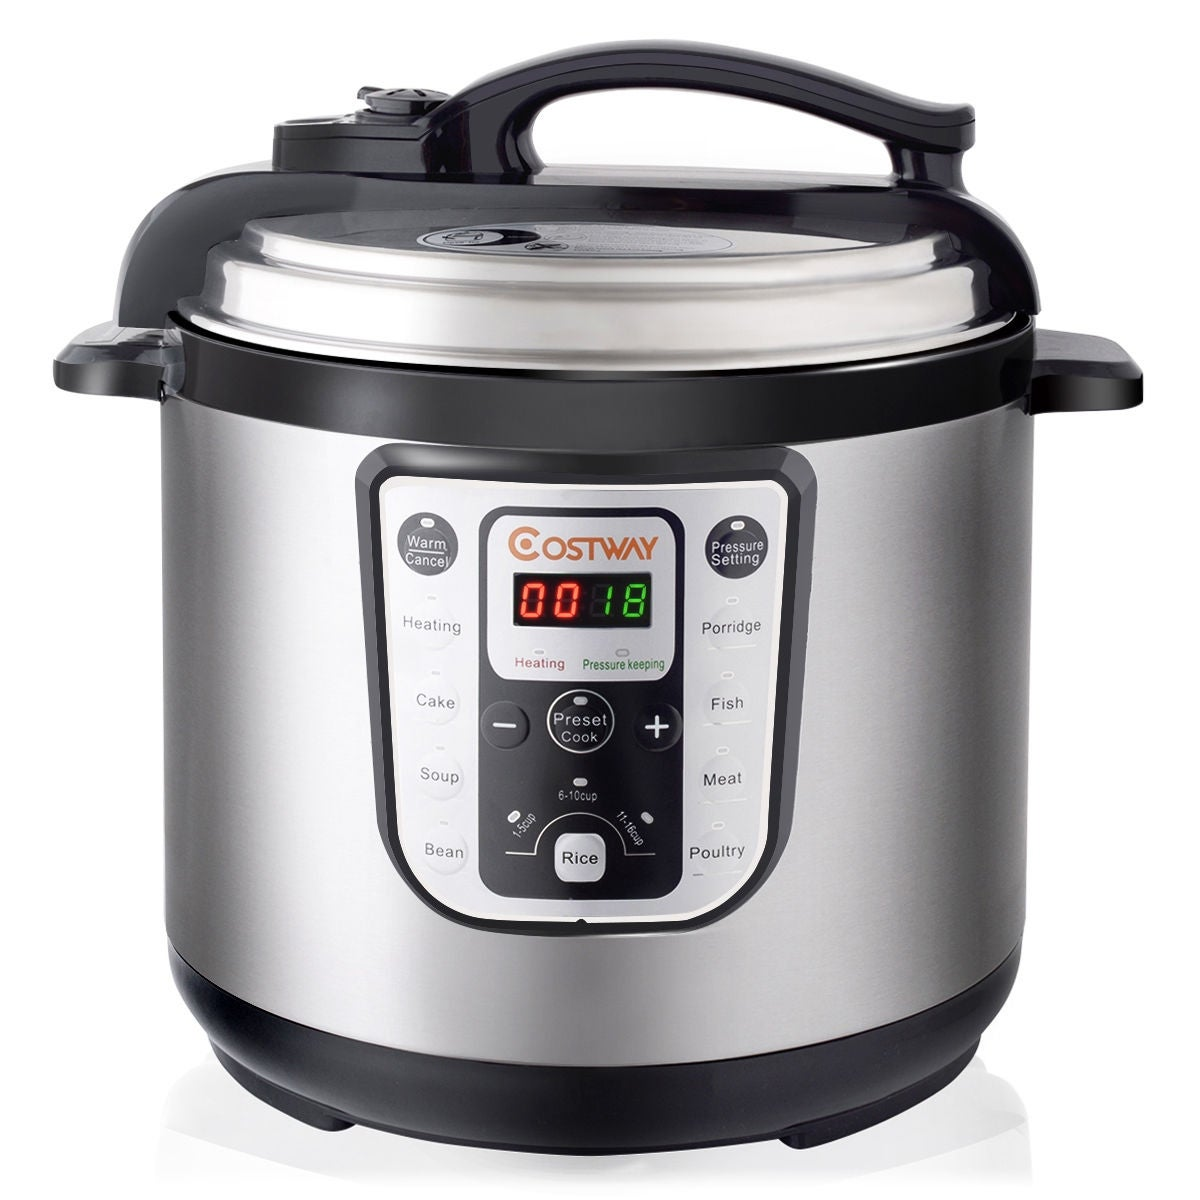 Costway 1250W 8 Quart Electric Pressure Cooker Programmable Multi Use Stainless Steel